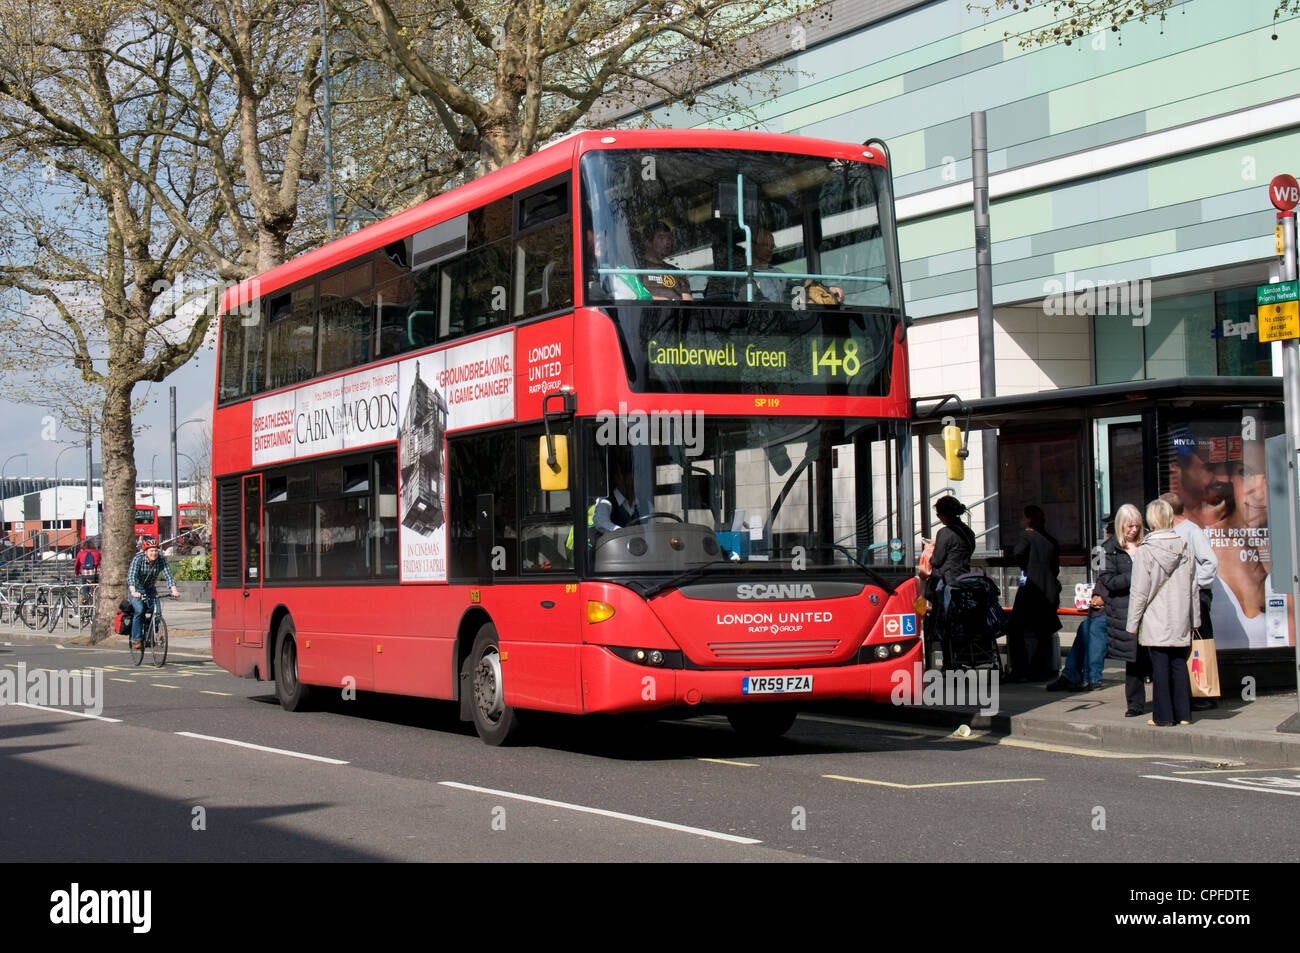 A Scania Omnidekka double deck bus operated by London United picks up passengers outside the Westfield shopping Stock Photo